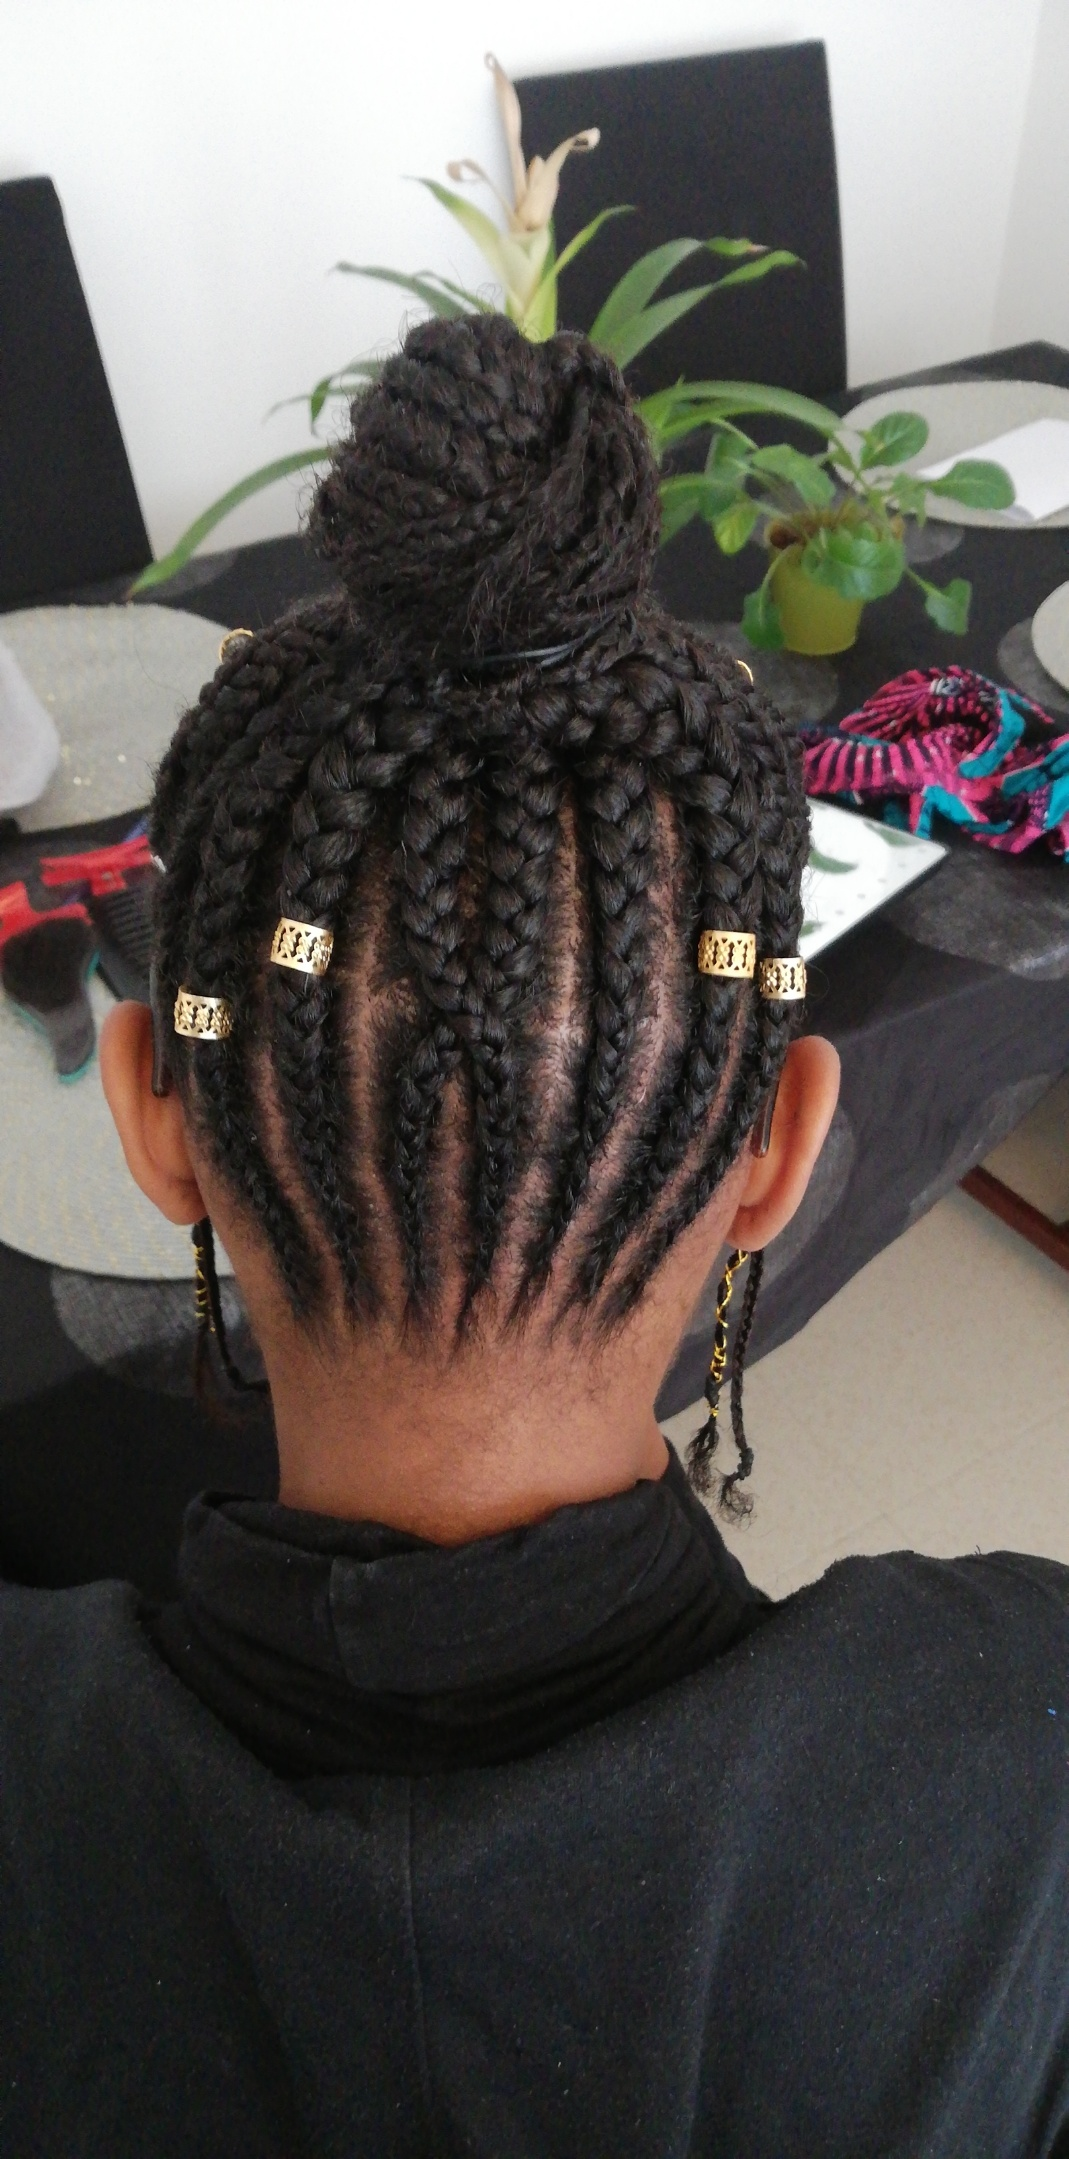 salon de coiffure afro tresse tresses box braids crochet braids vanilles tissages paris 75 77 78 91 92 93 94 95 OURGANAN